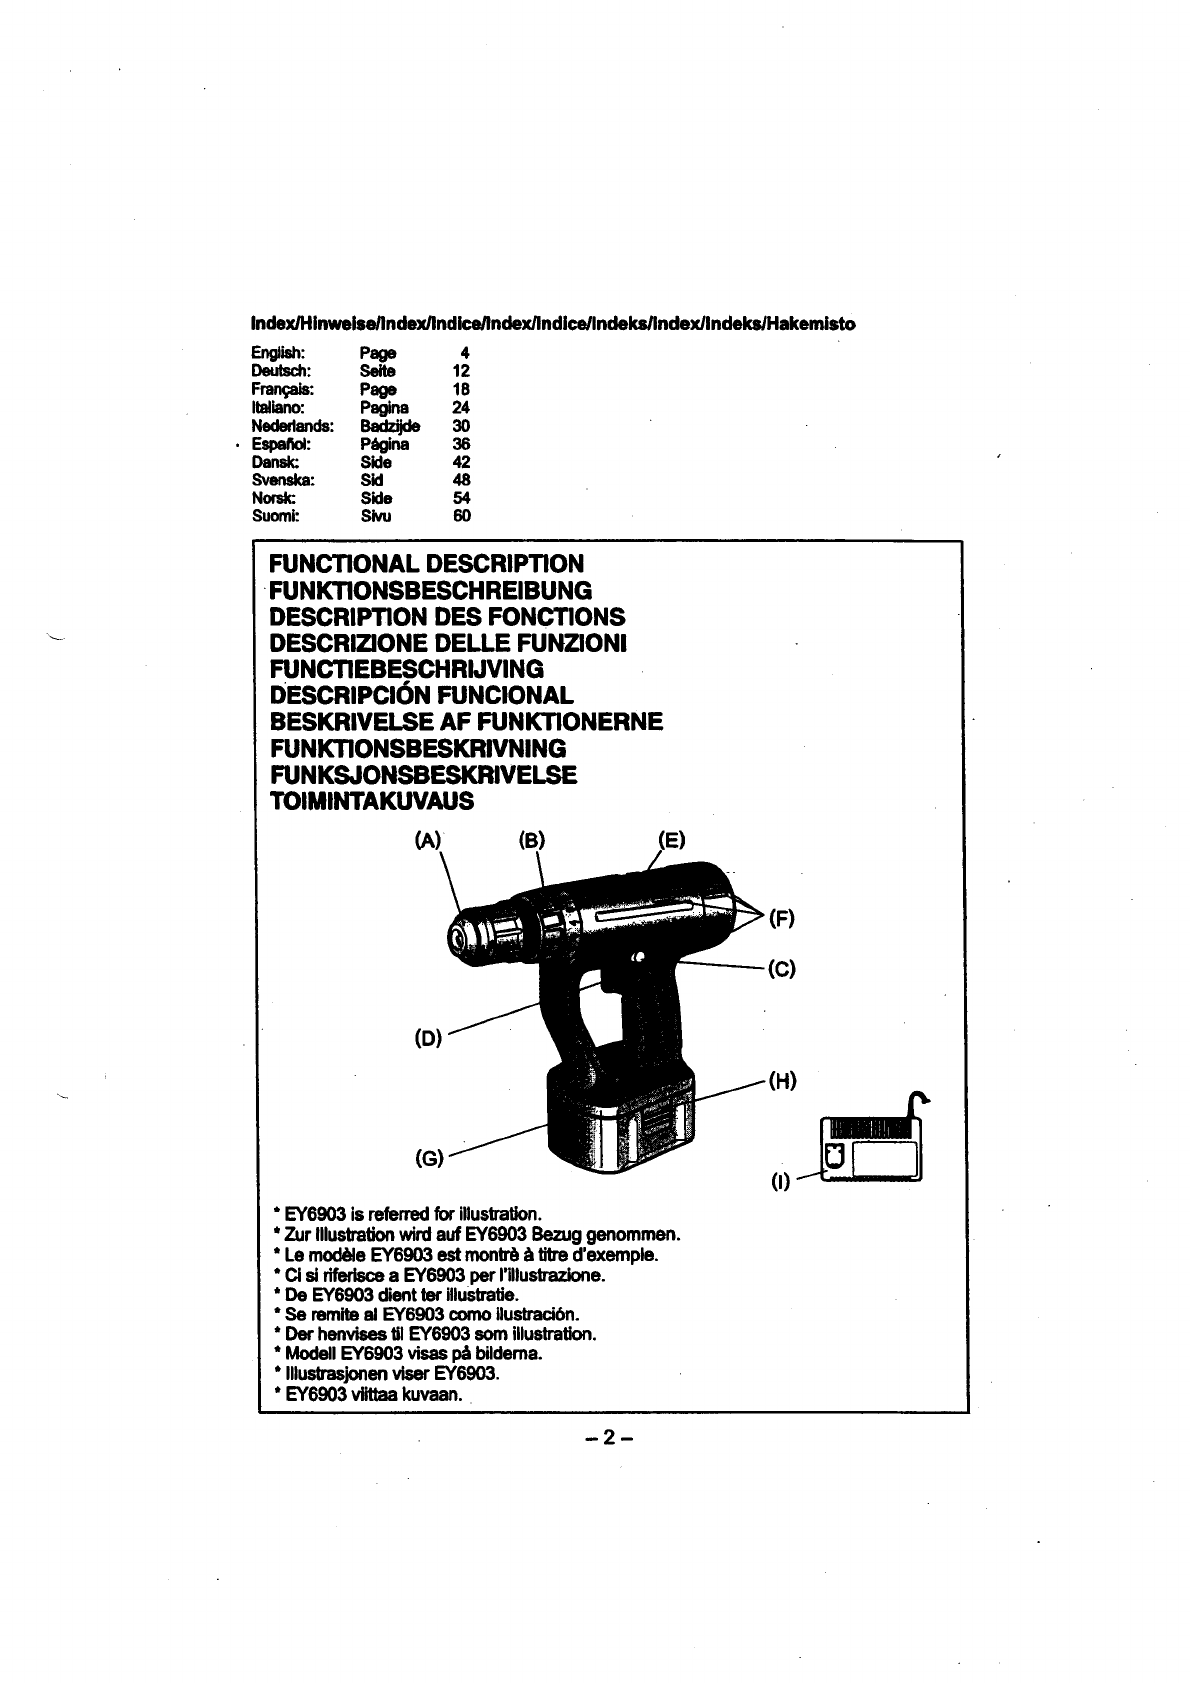 Page 2 of Panasonic Cordless Drill EY6903 User Guide